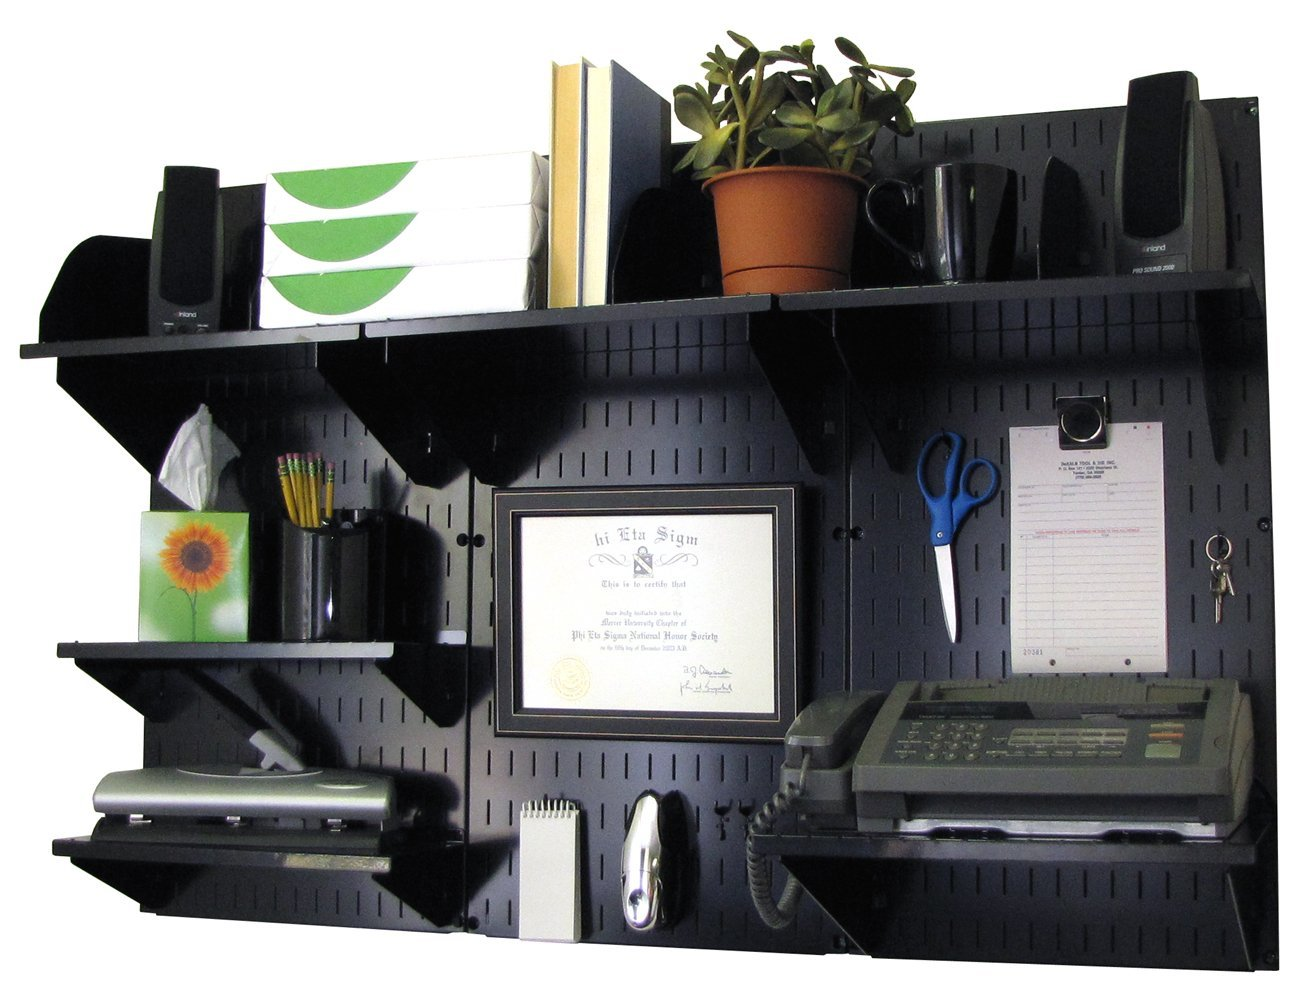 Wall Control 10 OFC 300 BB Office Wall Mount Desk Storage And Organization  Kit, Black   Home Office Desks   Amazon.com